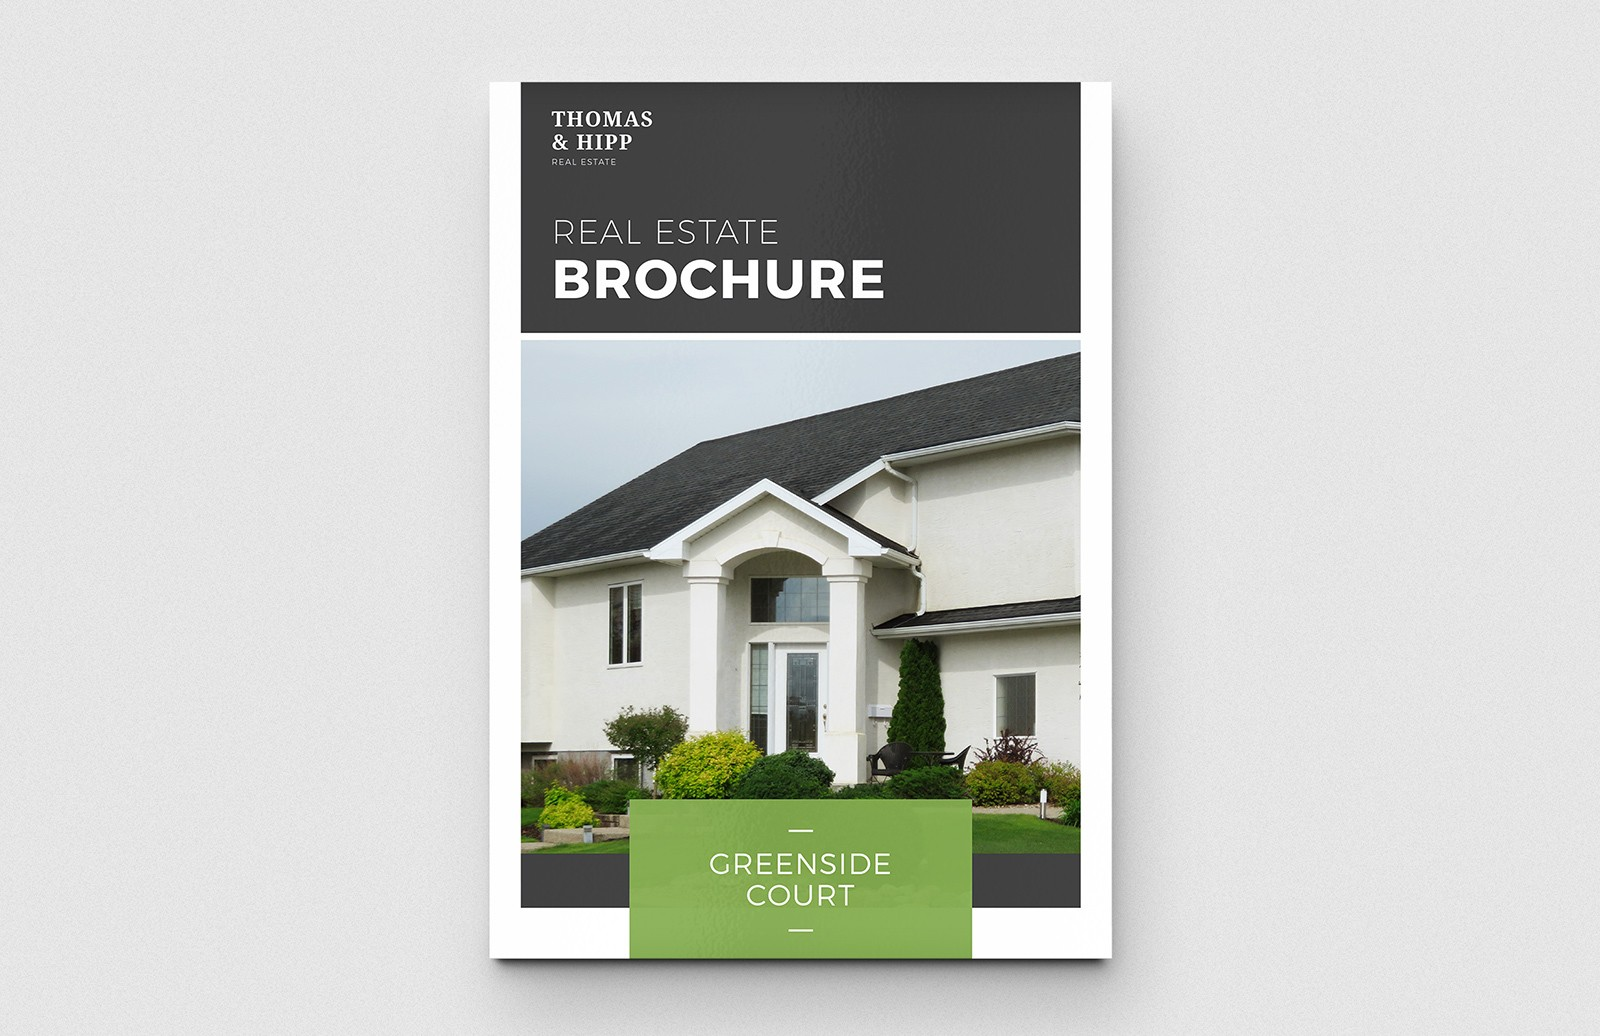 free real estate brochure templates - real estate brochure template medialoot